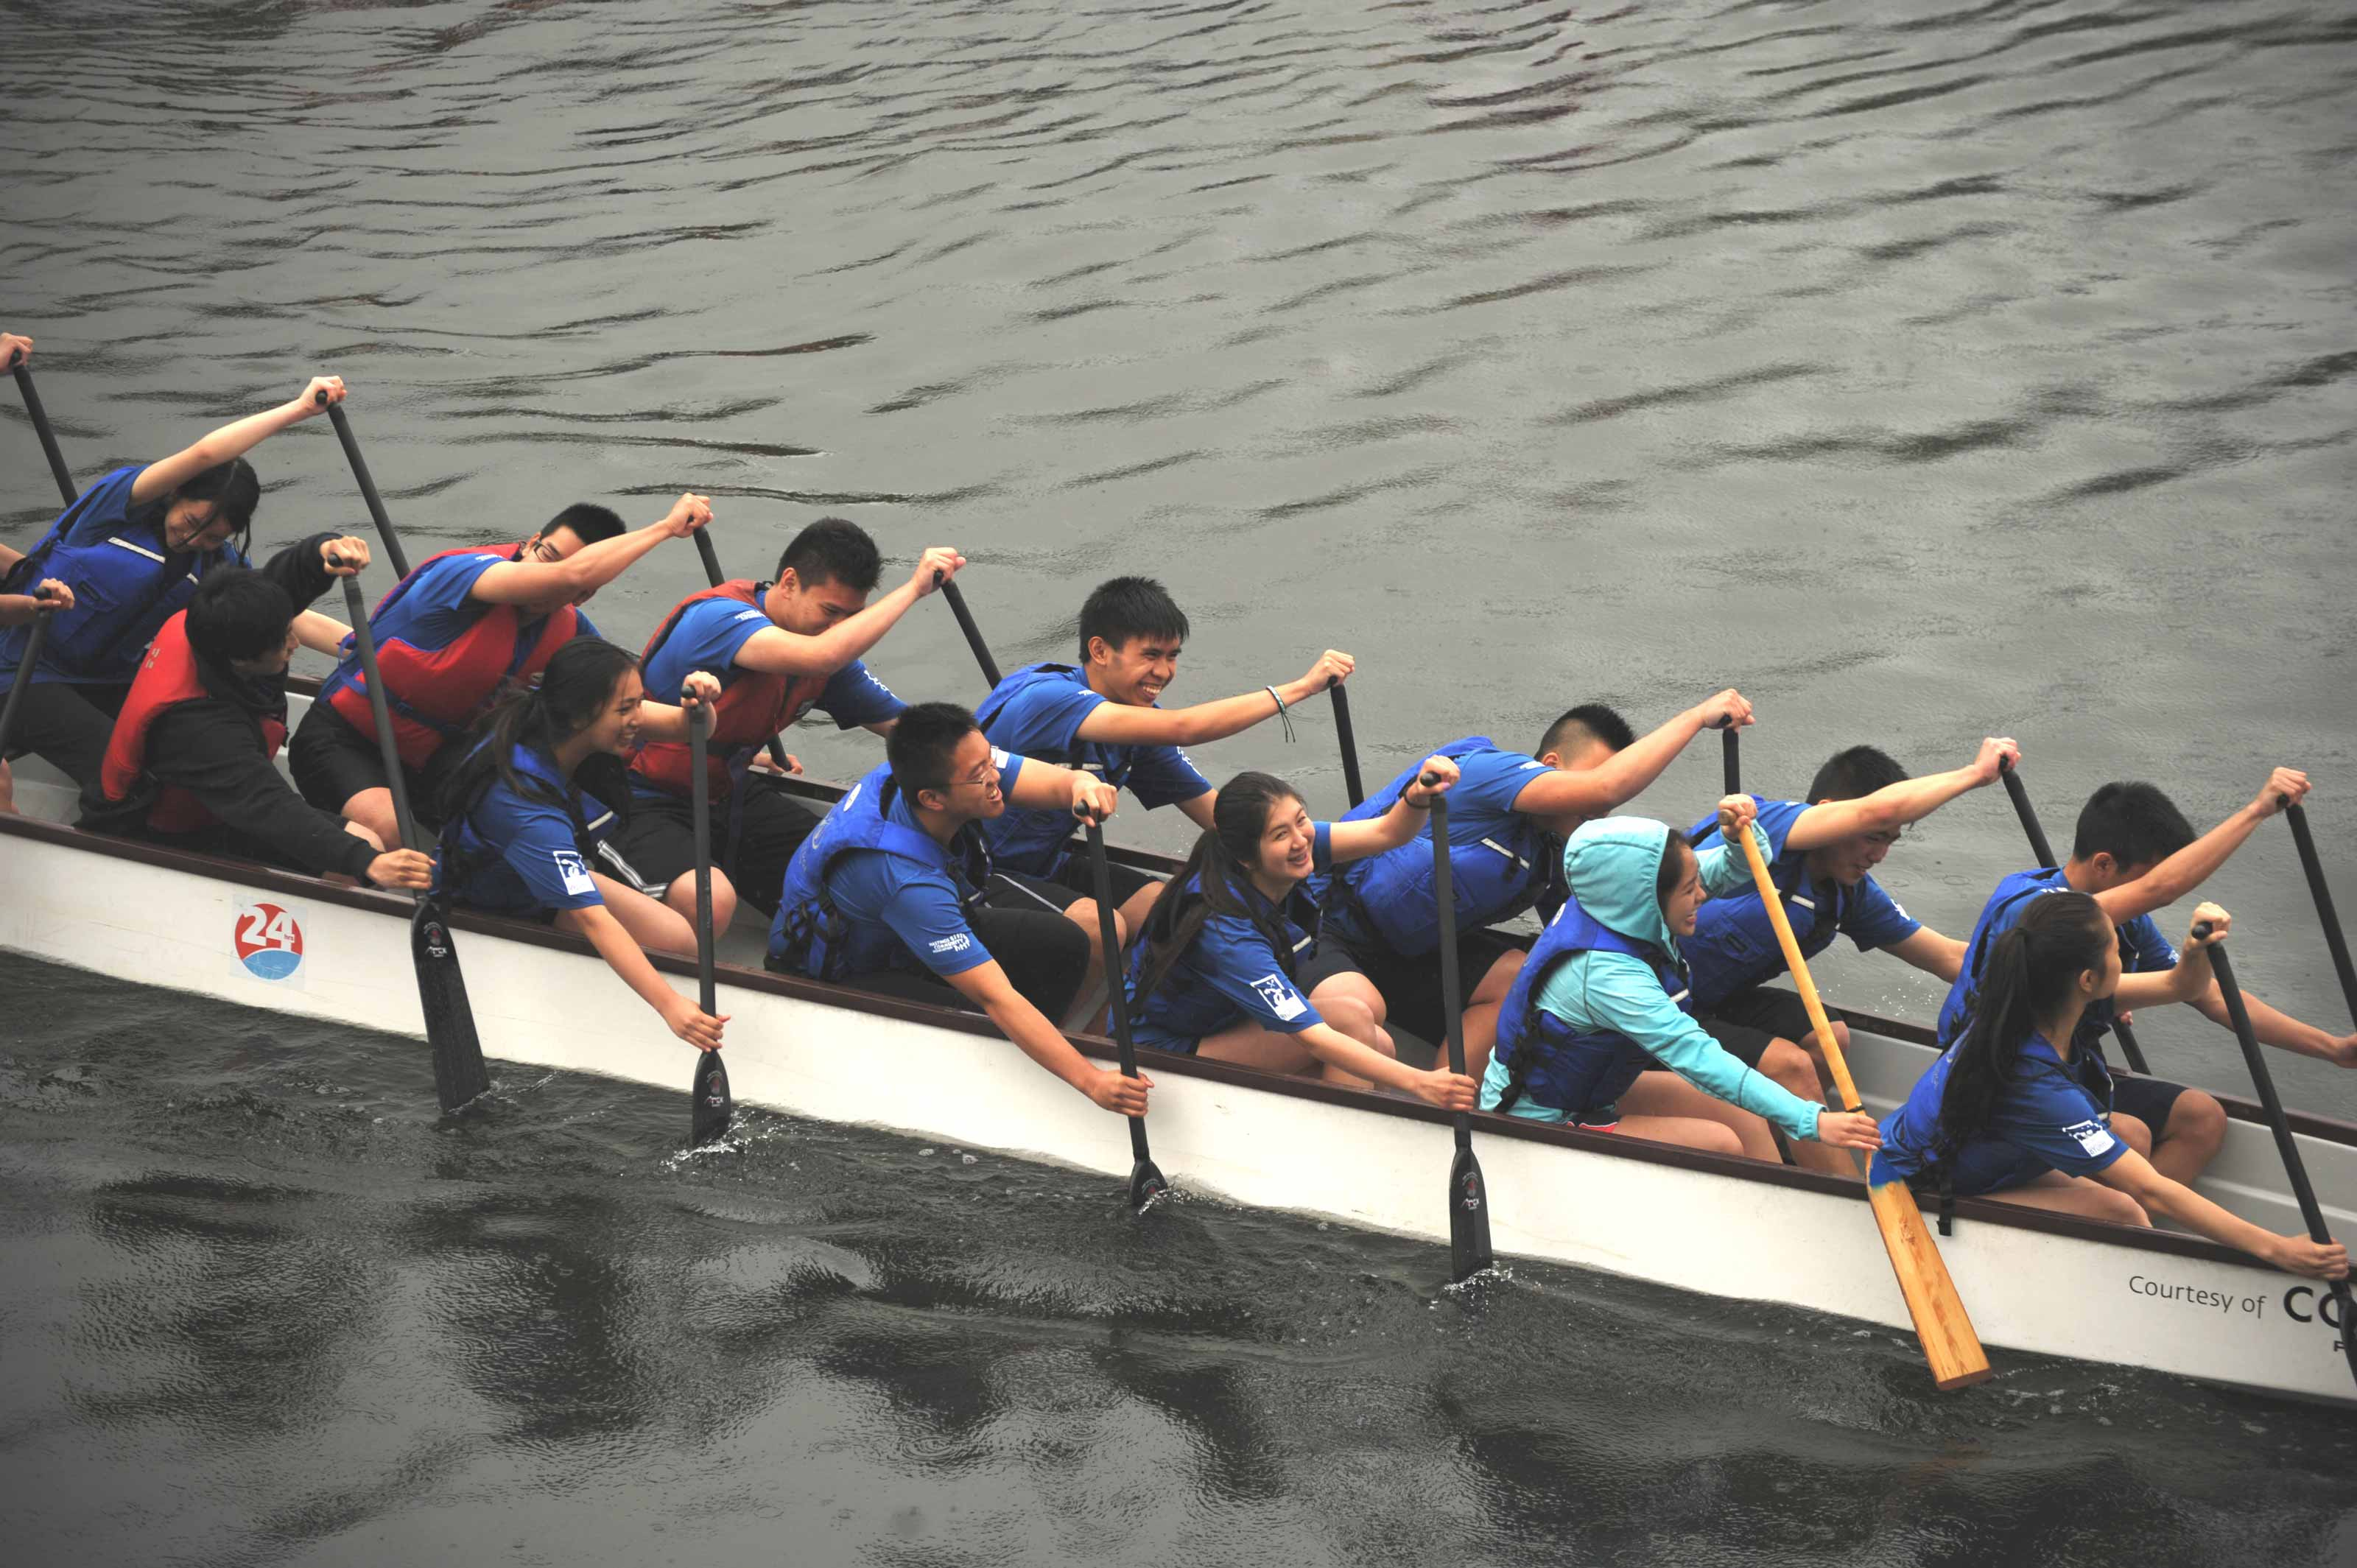 Hastings Hydras dragon boat team racing on the water in the False Creek, Vancouver BC, while wearing the blue branding Hasting Hydras jerseys — by Yagnyuk.